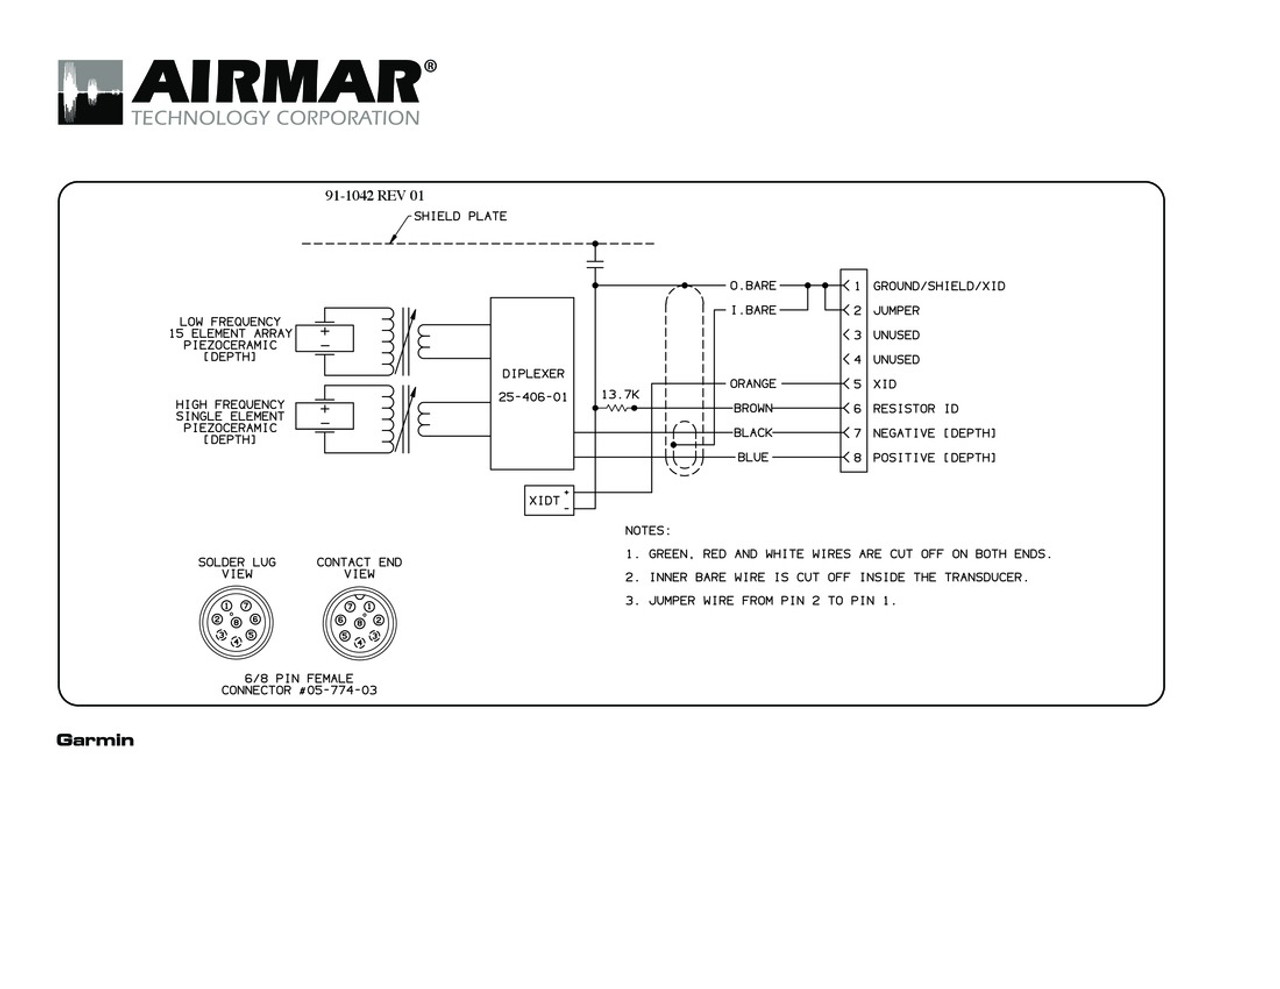 Garmin 7 Pin Wiring Diagram Library Pcie 8 Depth Only R199 Transducers With Connector 8g Airmar